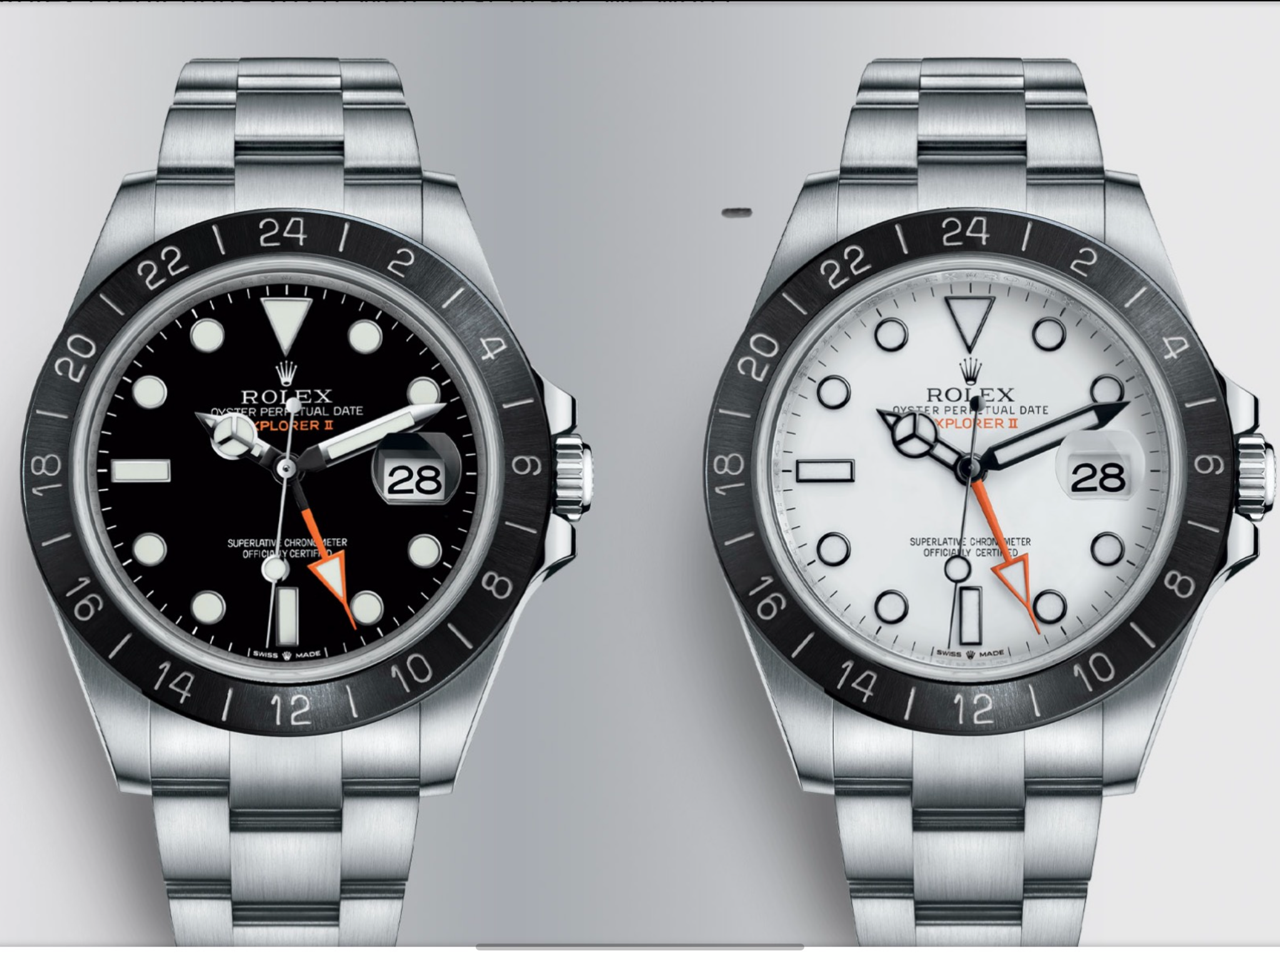 Watches for all occasions - cover